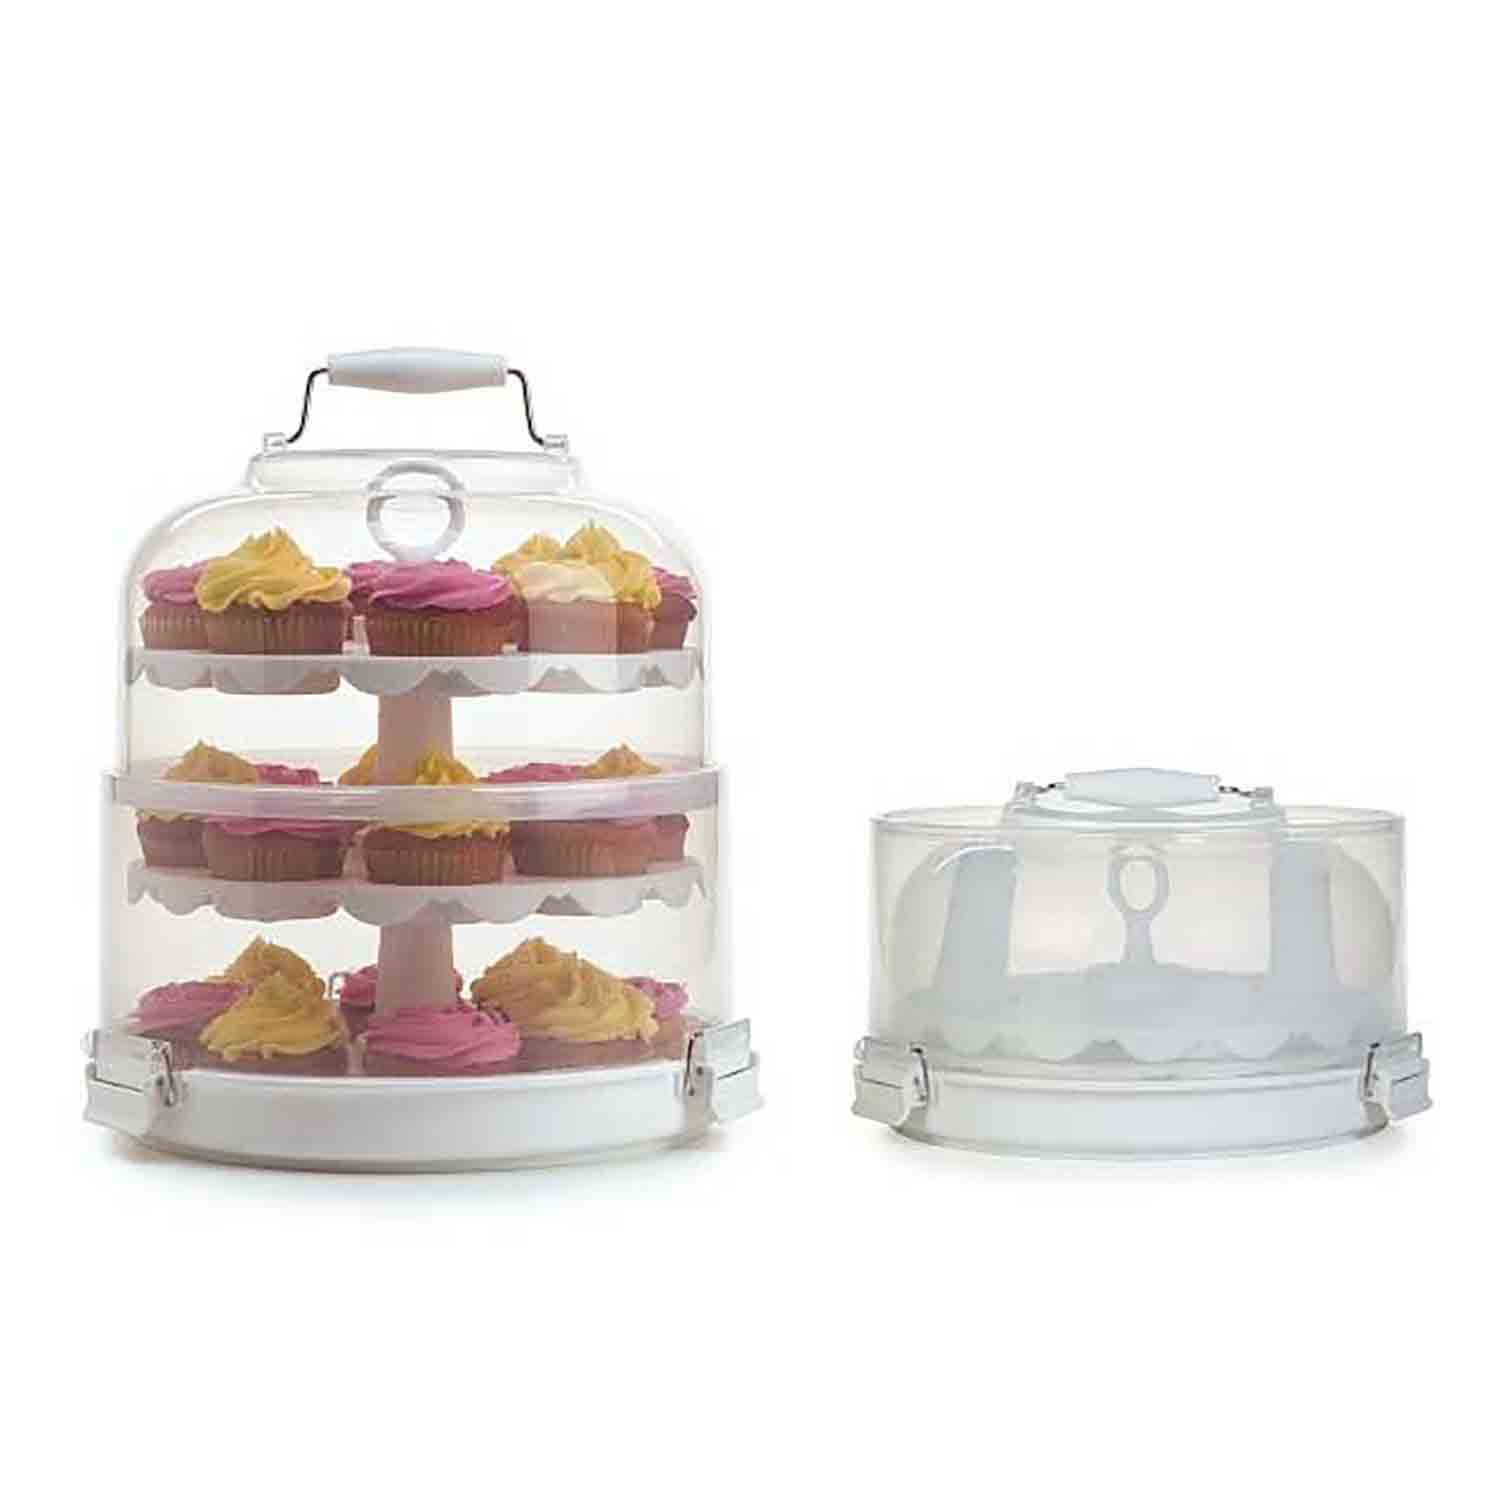 Cupcake Carrier and Display Stand